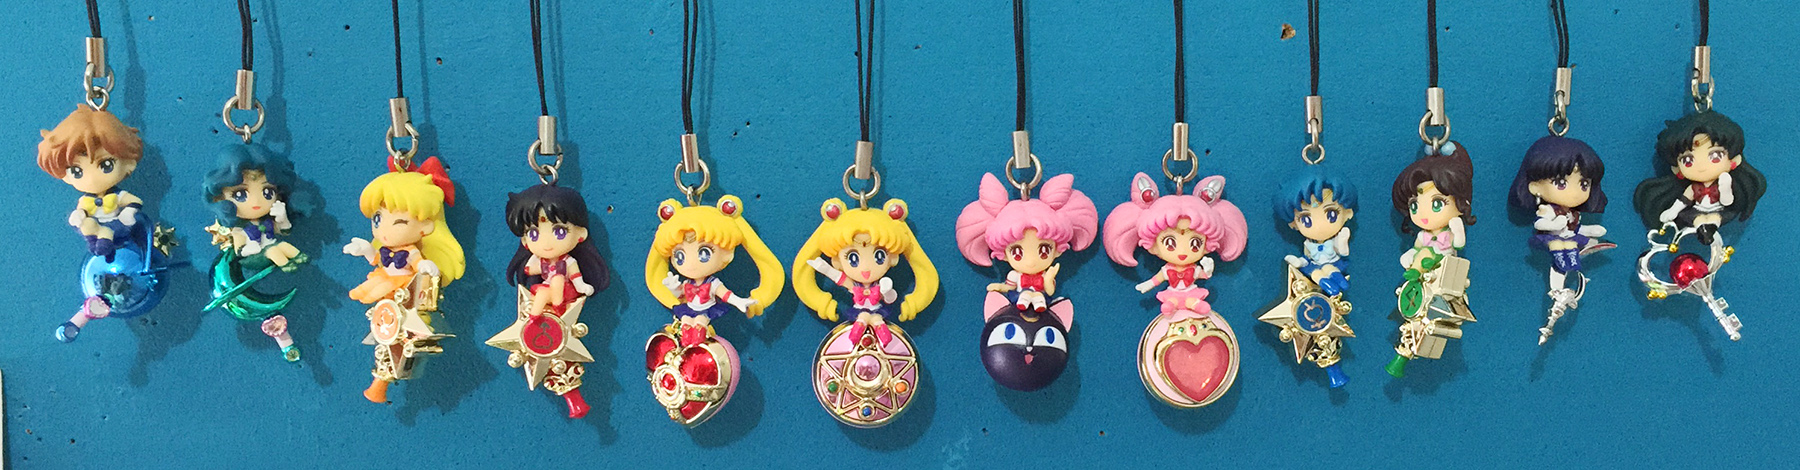 sailor_moon charm sailor_uranus sailor_neptune sailor_mars bandai sailor_venus chibiusa sailor_pluto sailor_mercury sailor_jupiter bishoujo_senshi_sailor_moon toei_animation takeuchi_naoko sailor_chibimoon sailor_saturn luna-p candy_toy bishoujo_senshi_sailor_moon_s twinkle_dolly_sailor_moon twinkle_dolly_sailor_moon_2